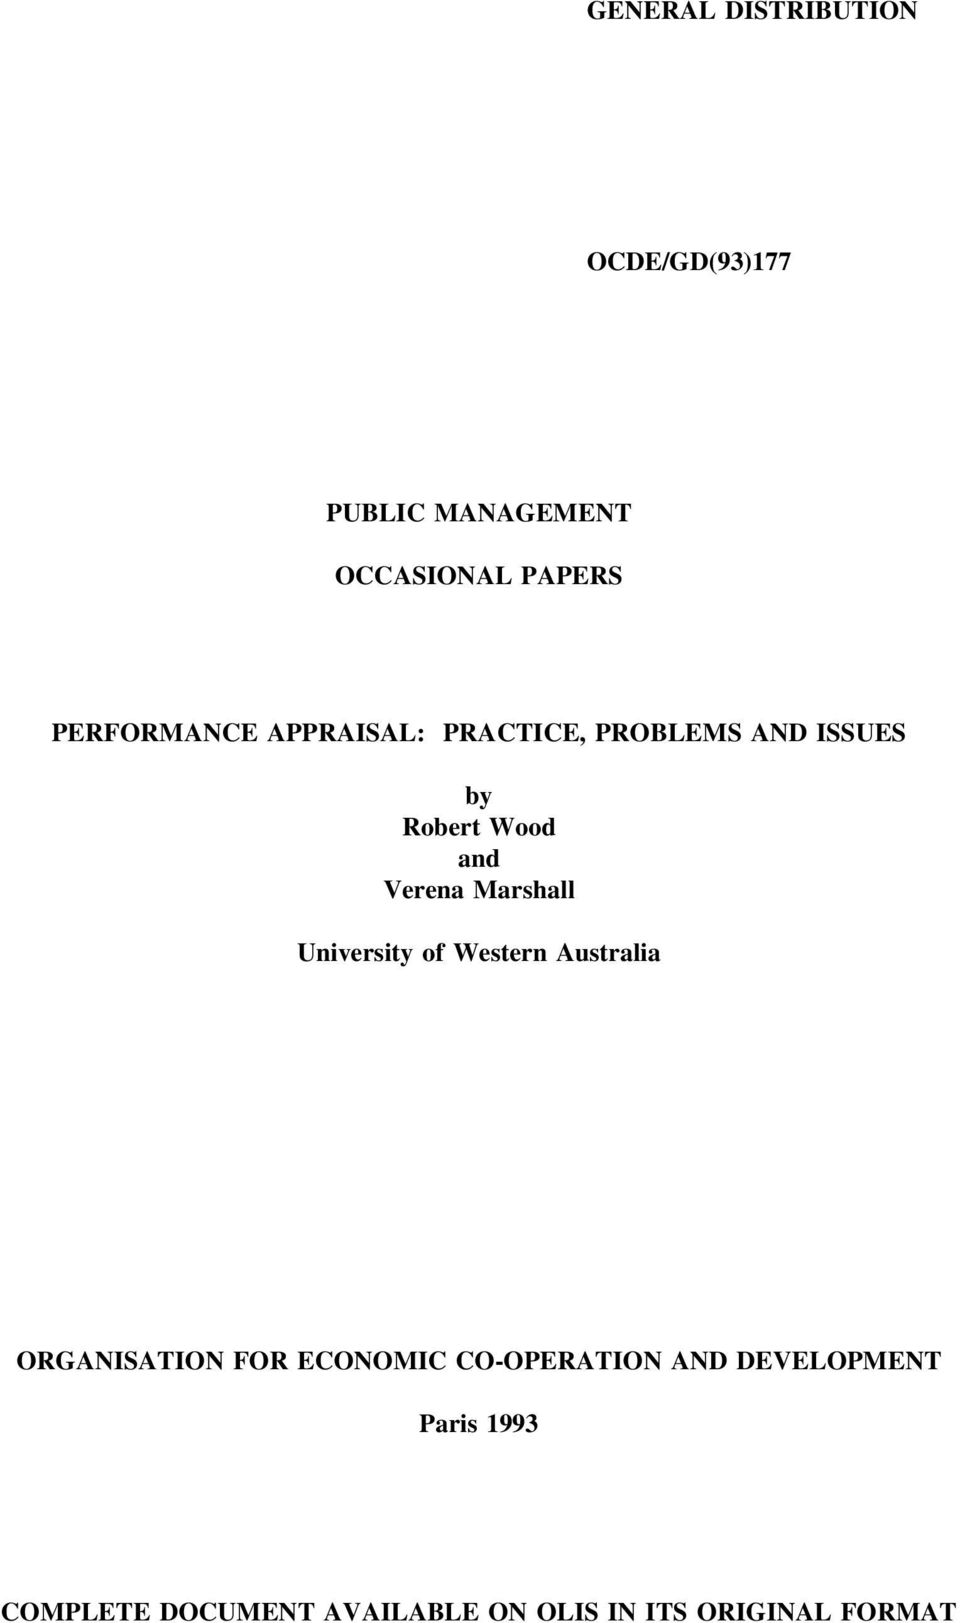 HR management essay on: Effective Performance Management Systems